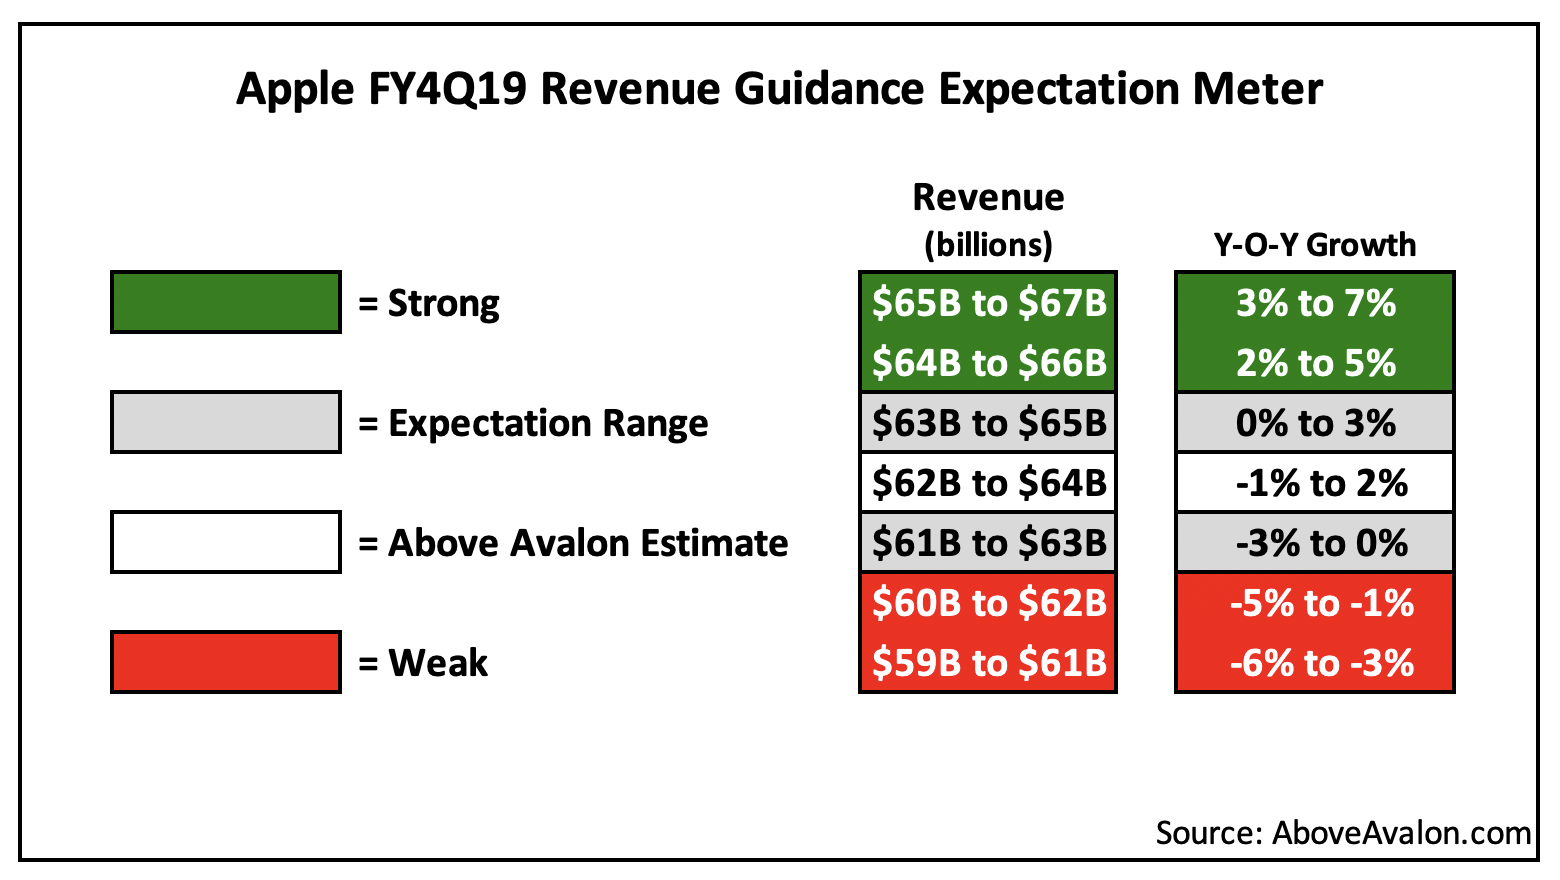 Apple 4Q19 Revenue Guidance Expectation Meter (Above Avalon)